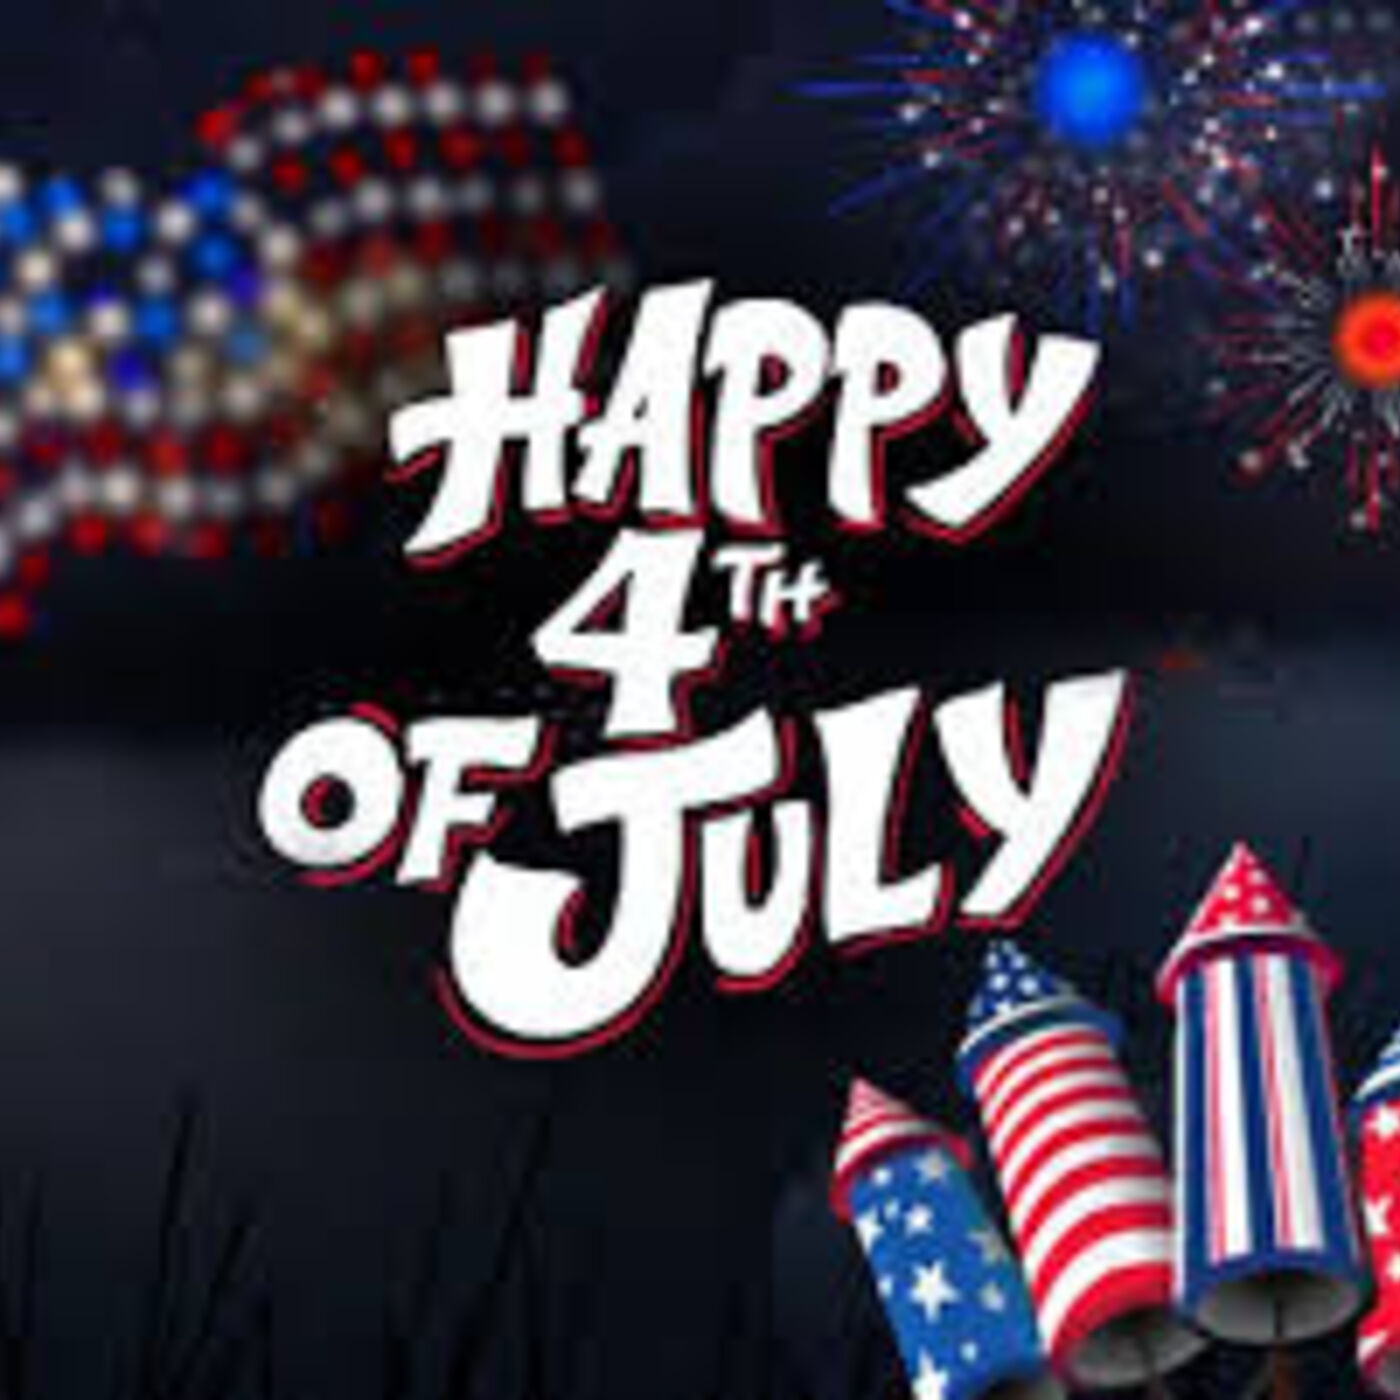 Happy 4th of July!!!